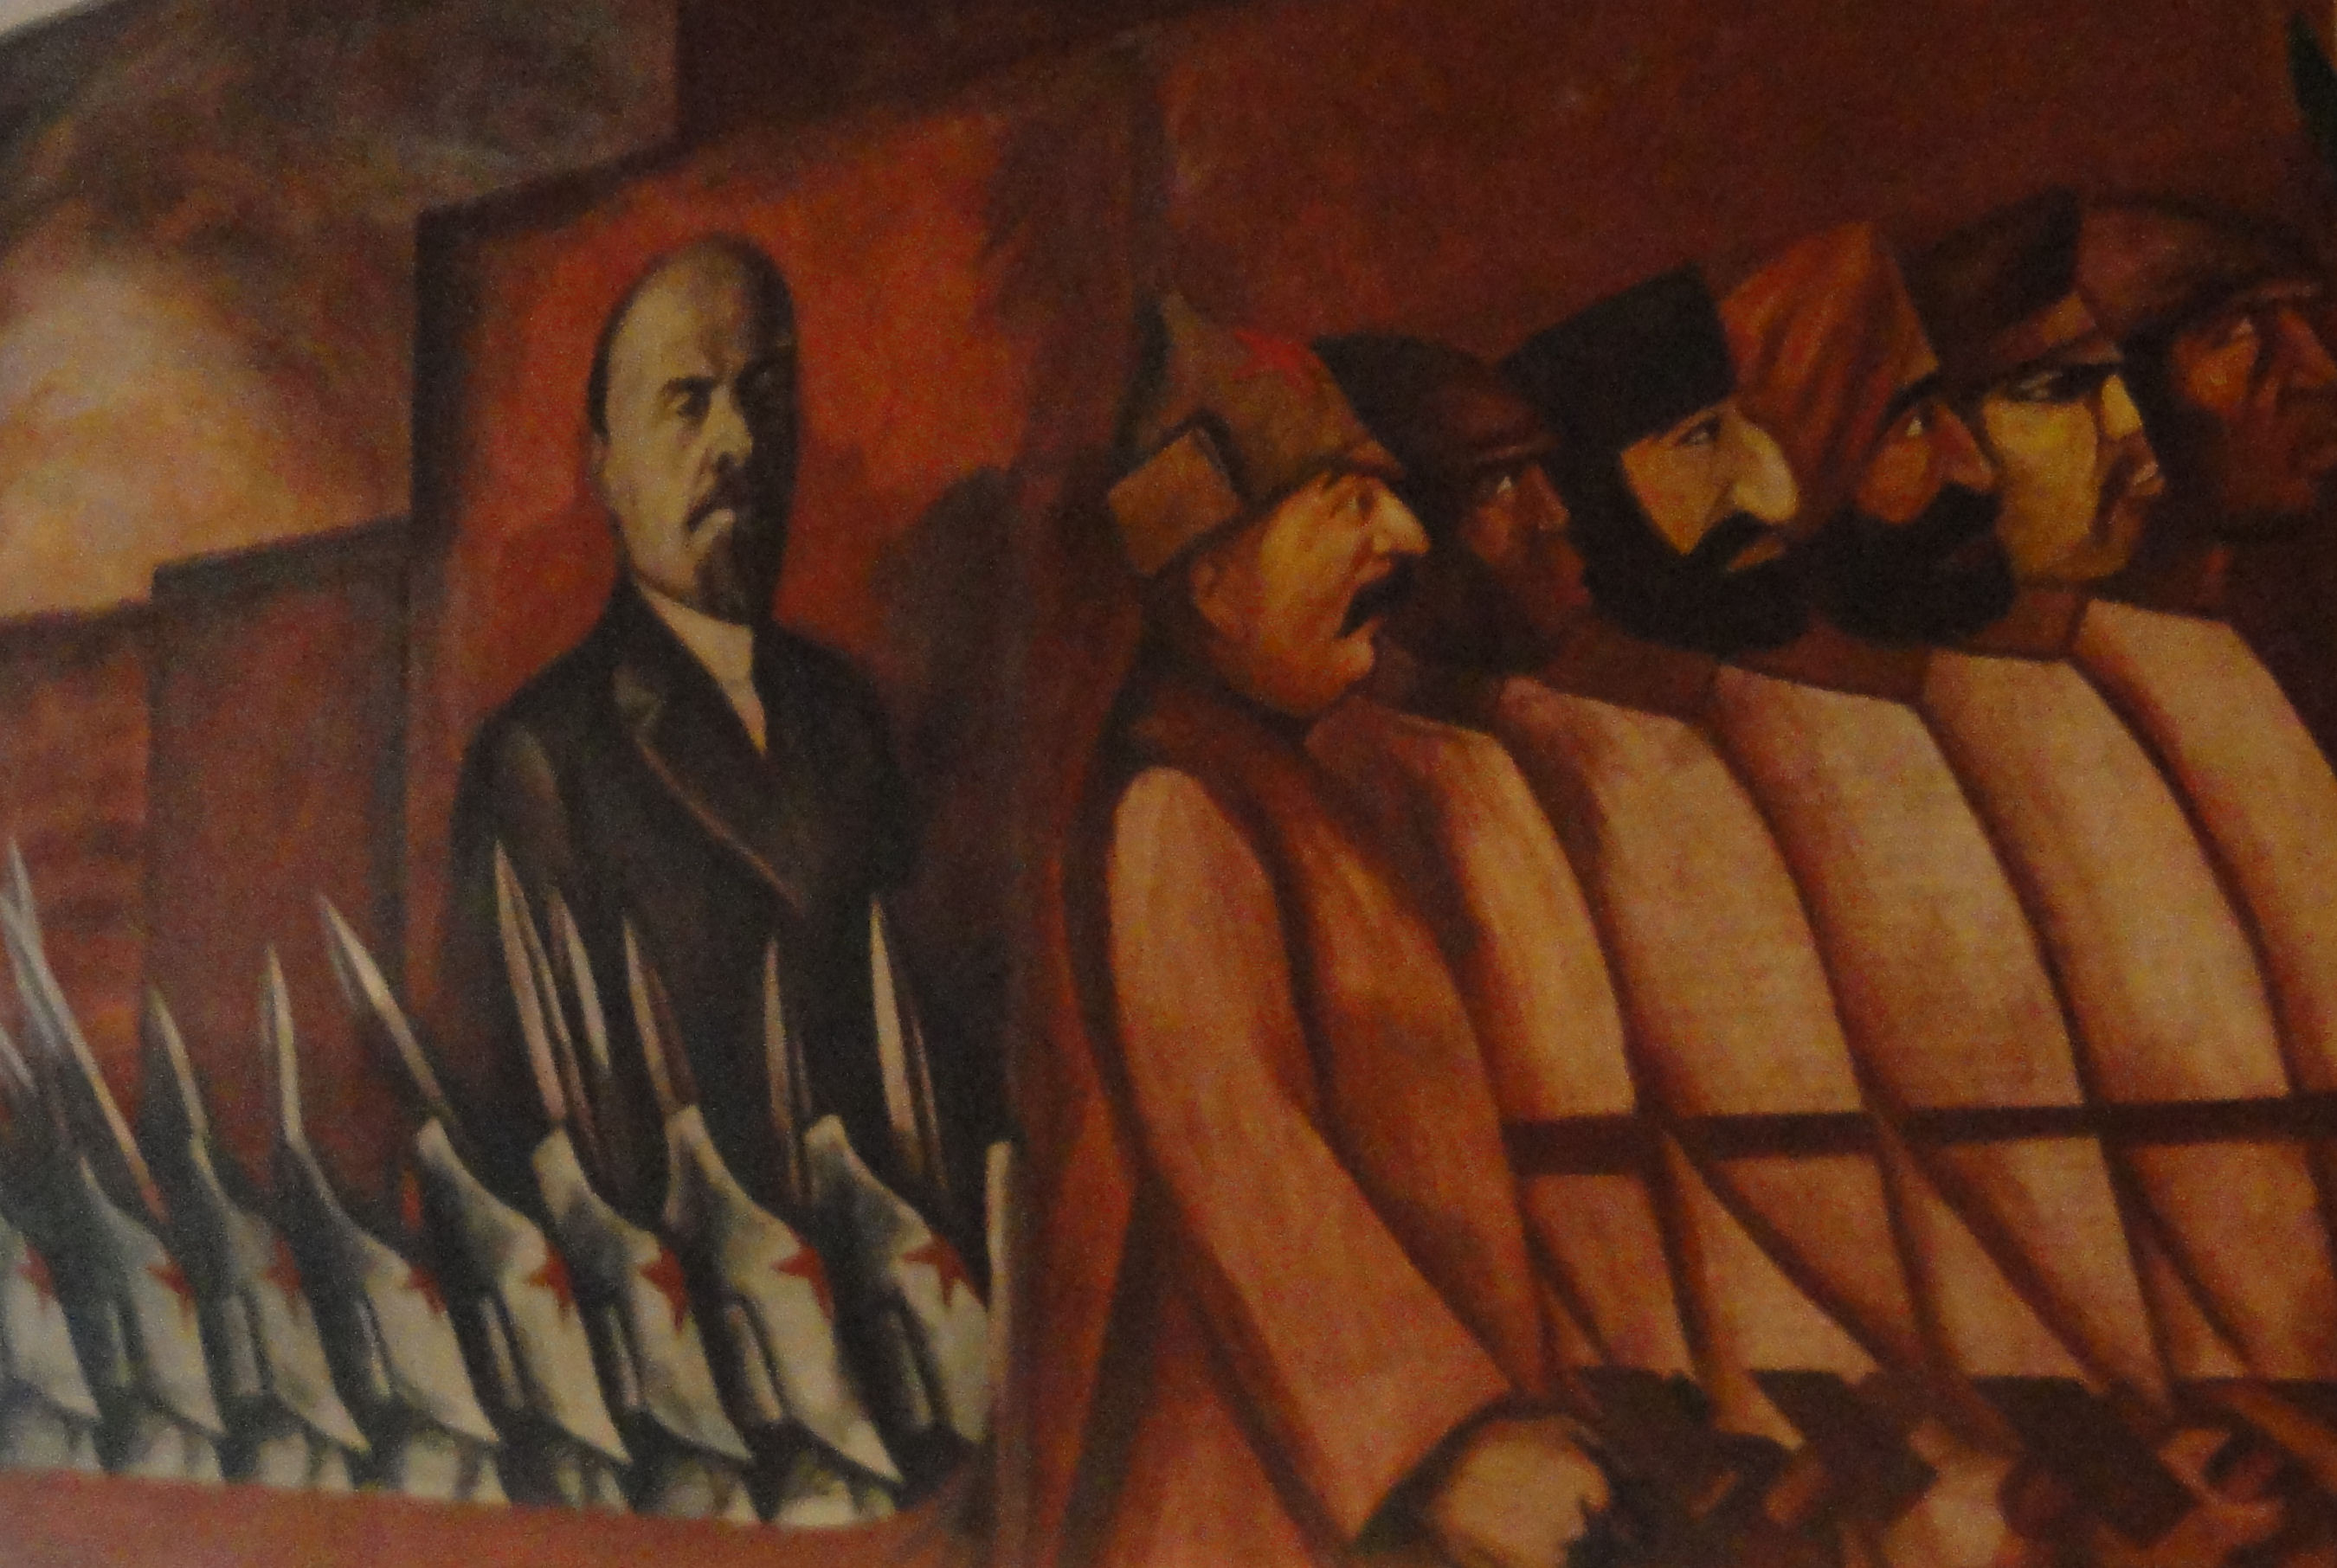 Mural of Lenin at New School